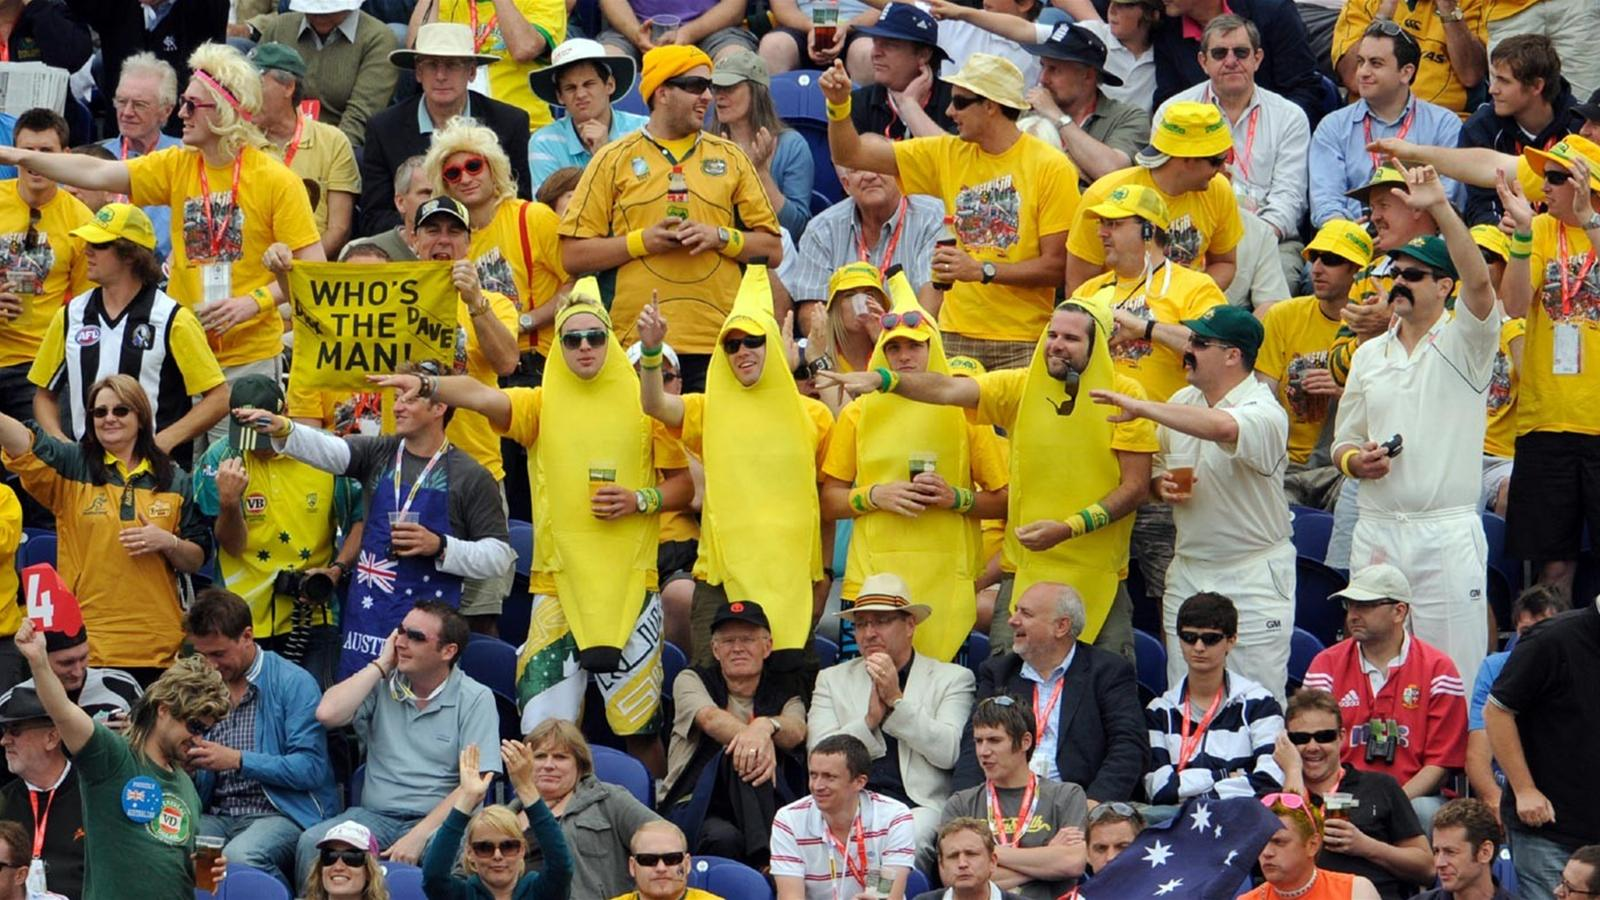 Record Crowd At Mcg Ashes 2009 Cricket Eurosport